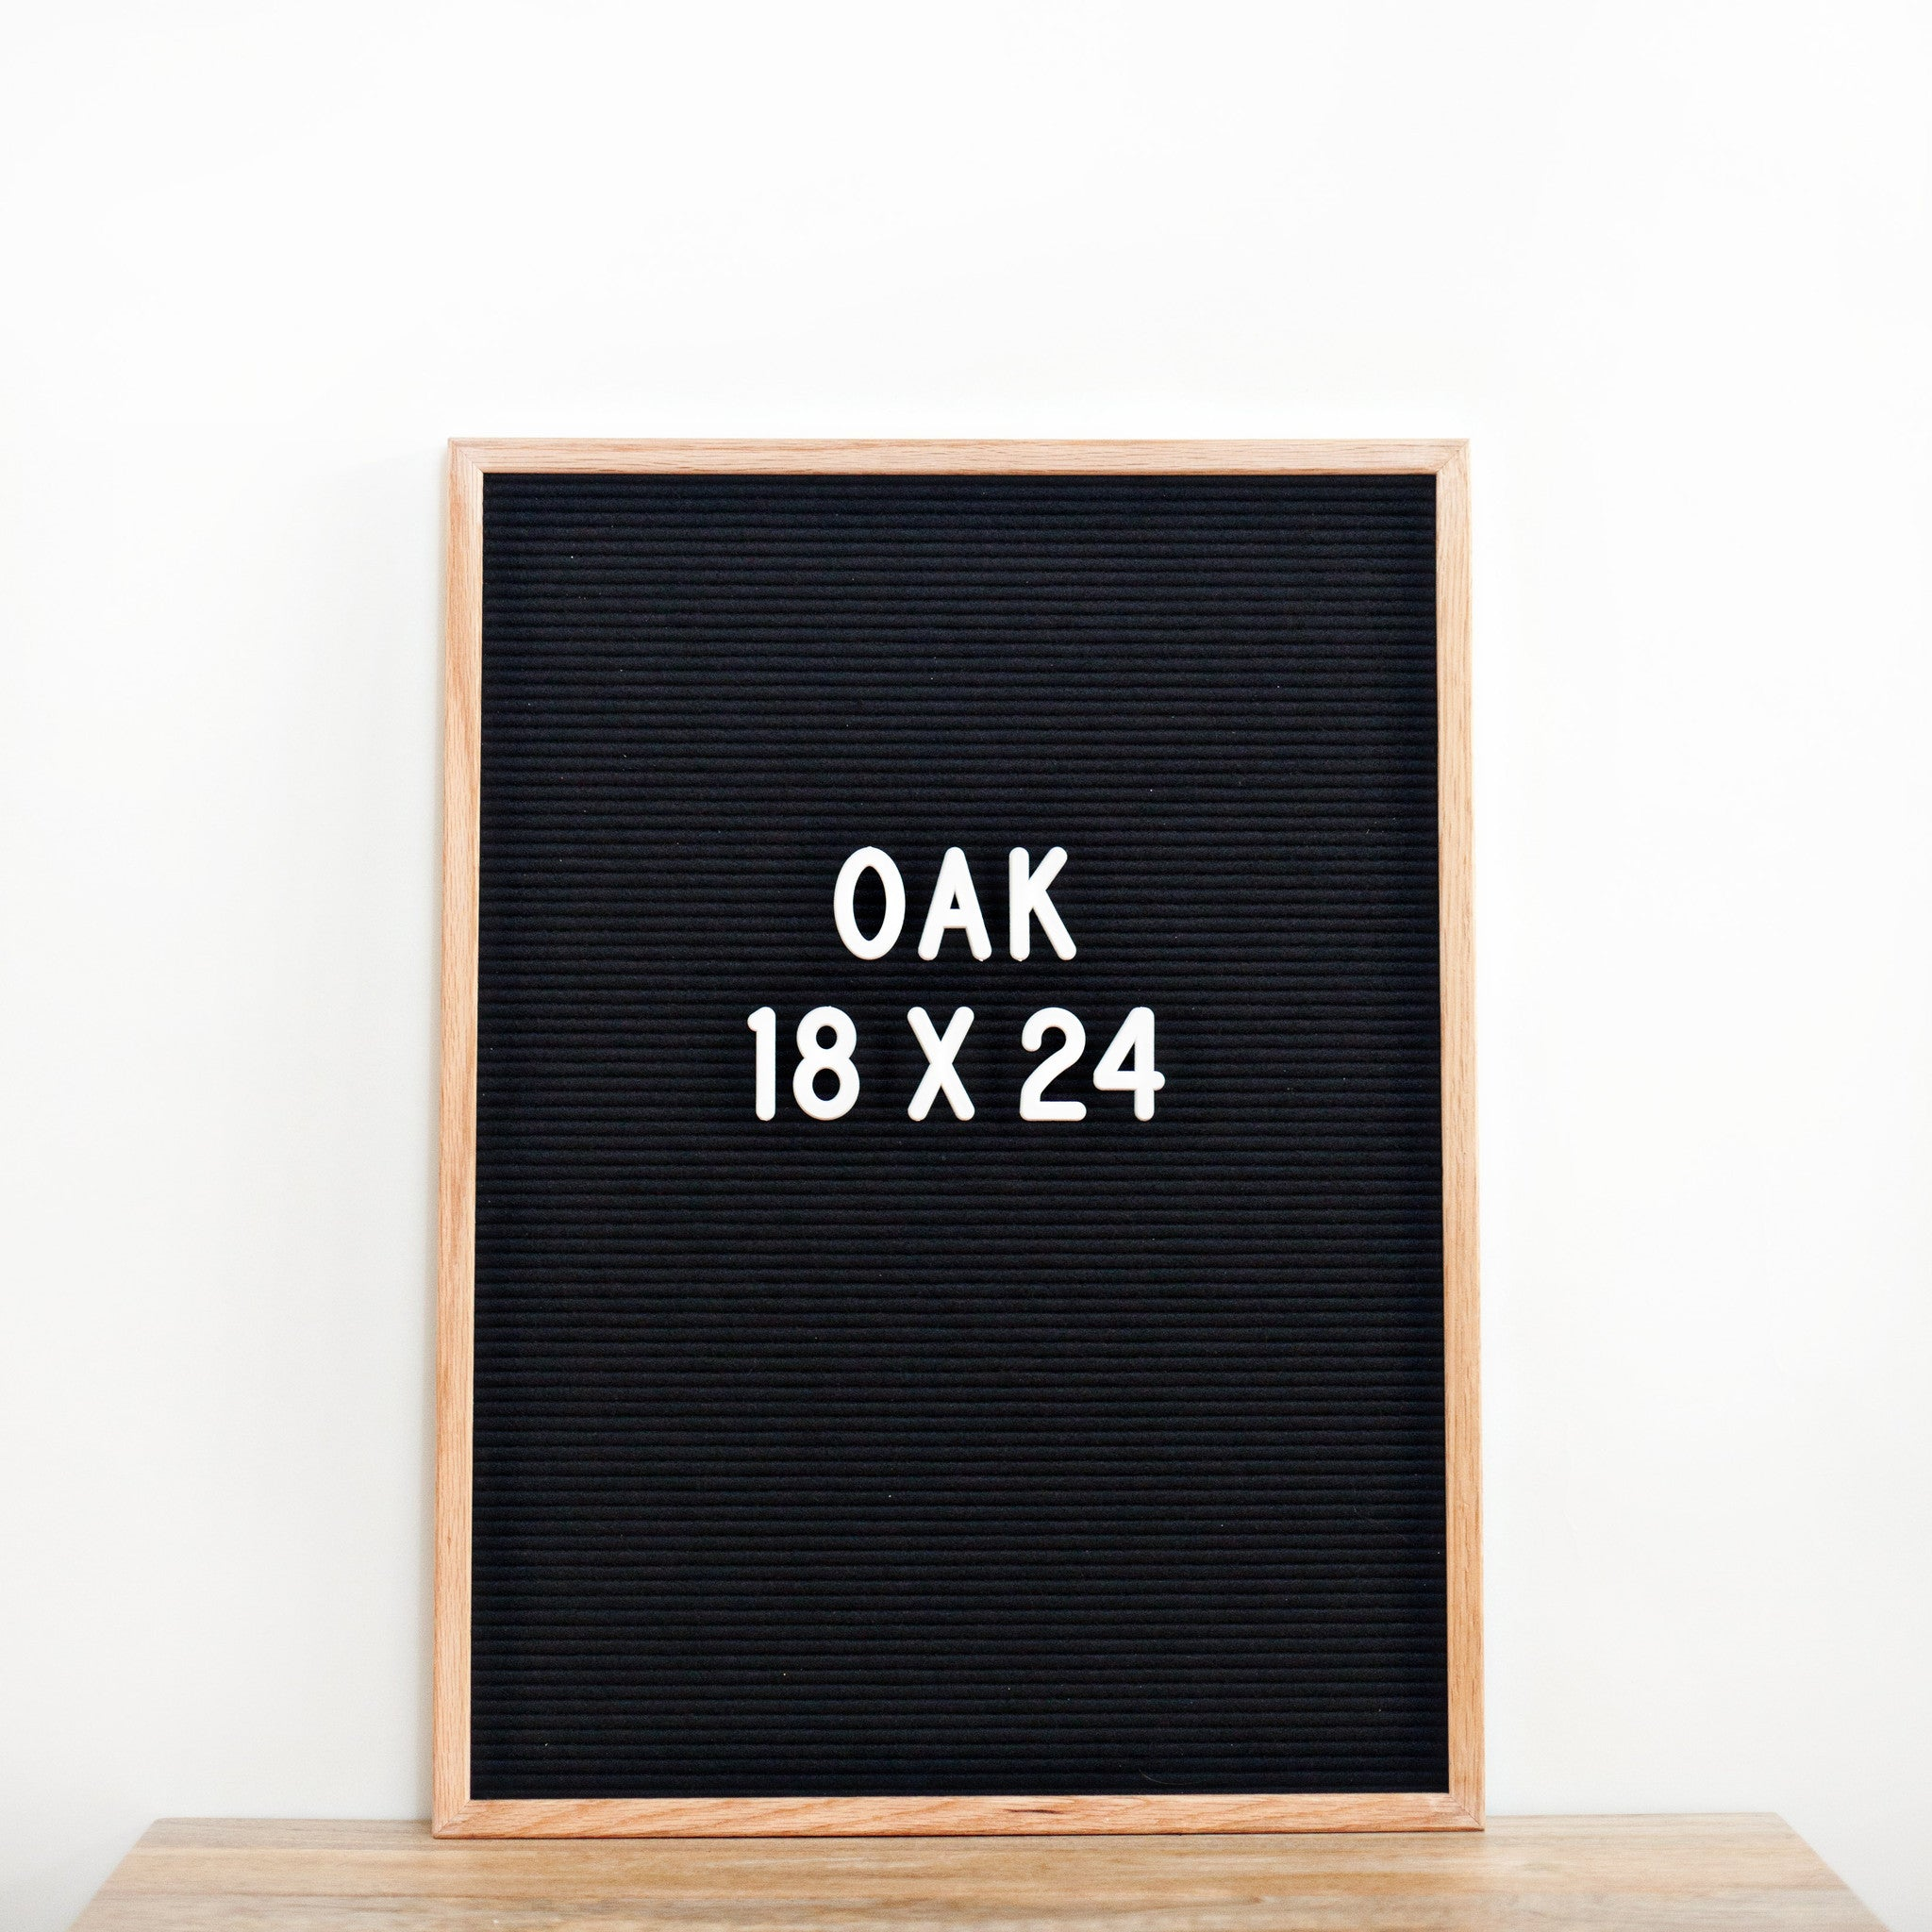 18 x 24 OAK FRAME, BLACK FELT LETTERBOARD – RIVI co. letter boards